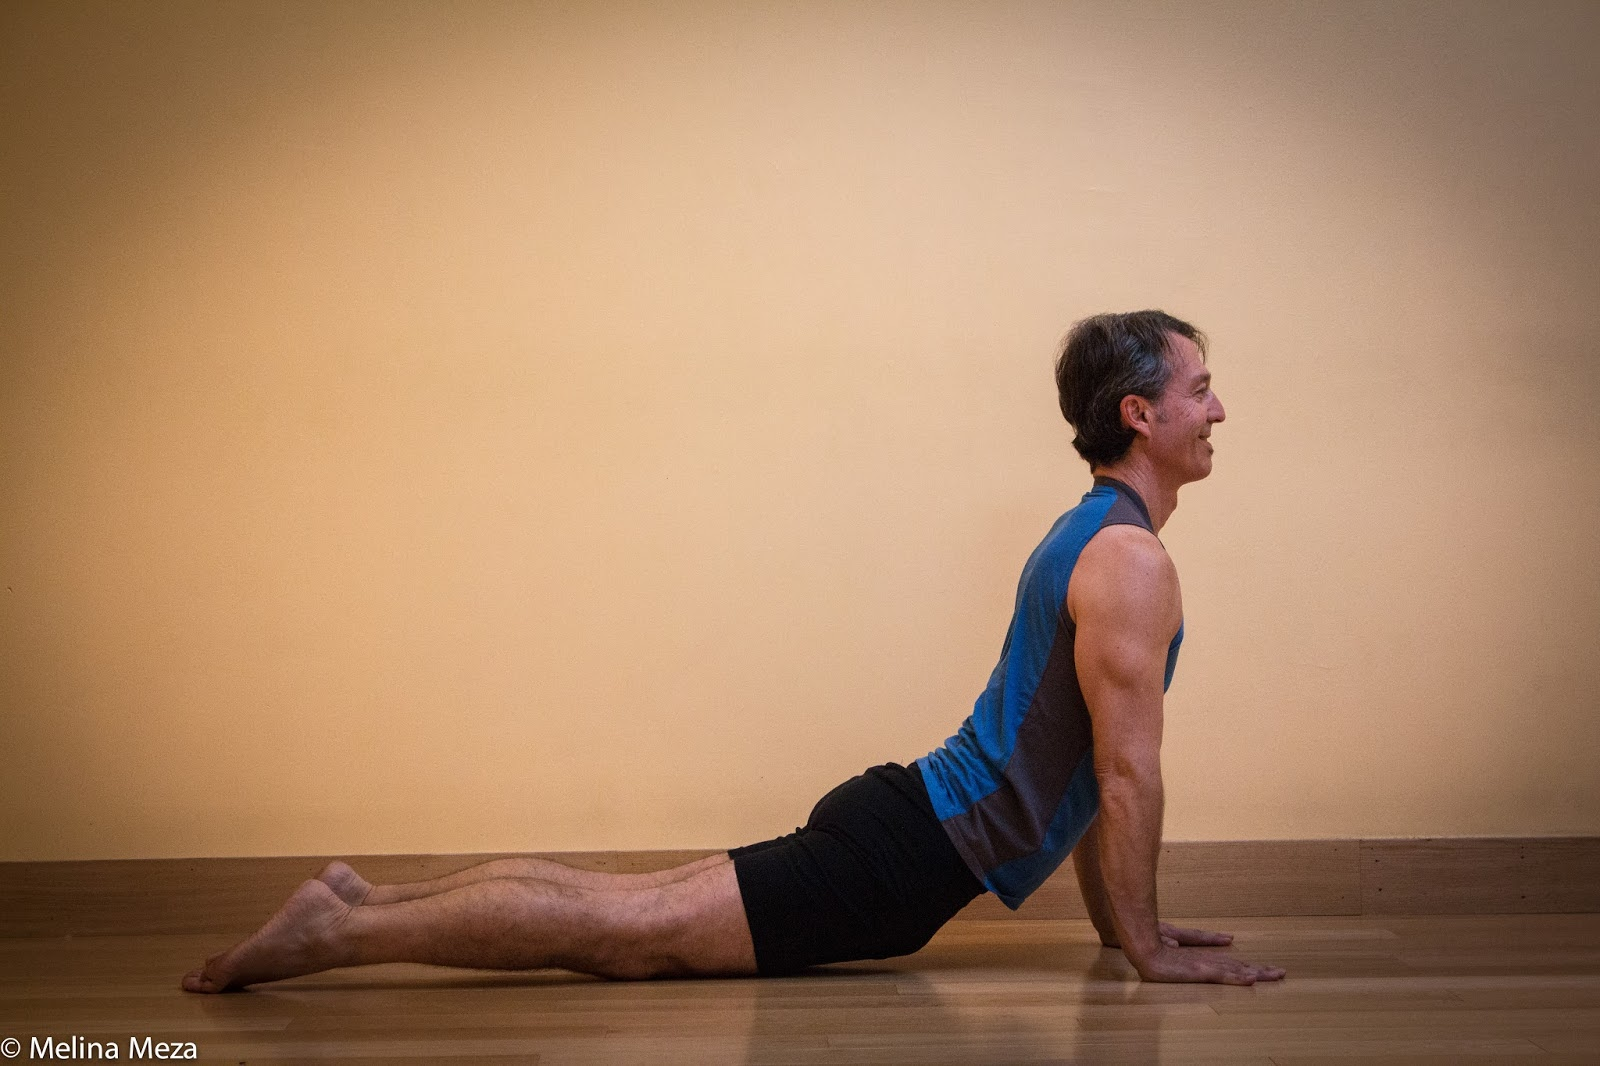 Compared To Our Other Variations The Classic Version Of Cobra Pose Creates Largest Overall Backbend In Your Entire Spine Maximizing Back Muscle